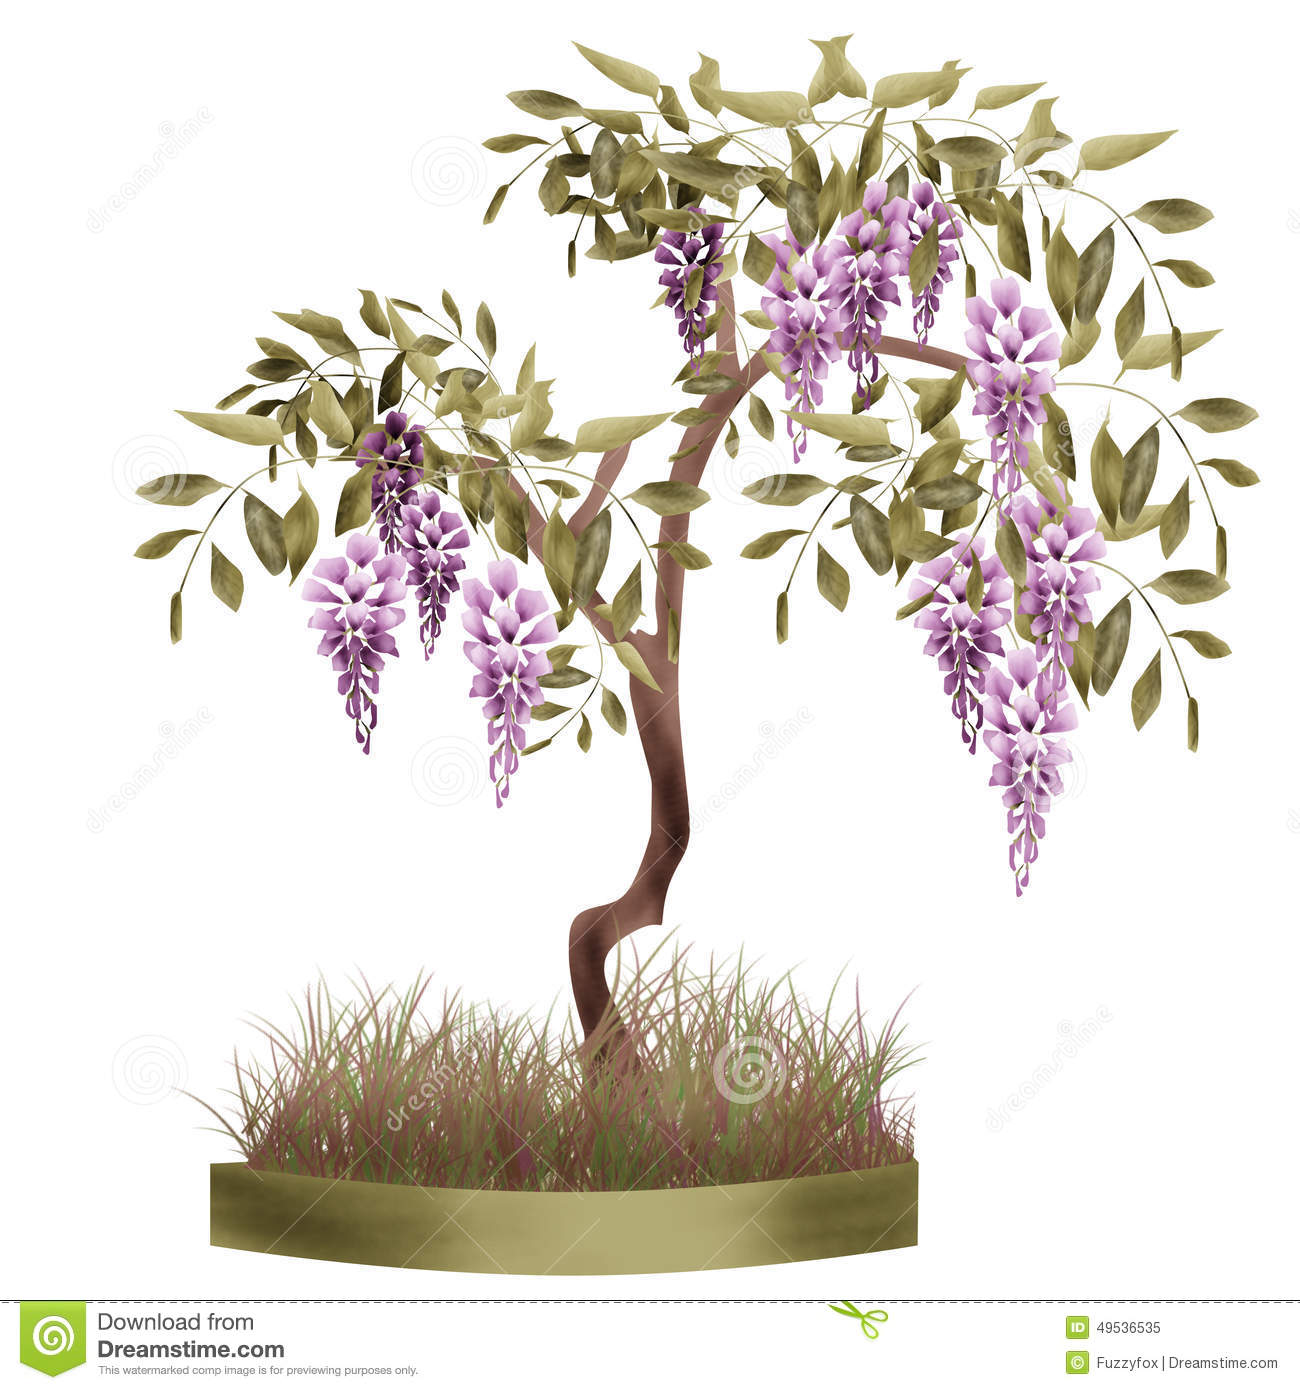 Wisteria clipart #10, Download drawings